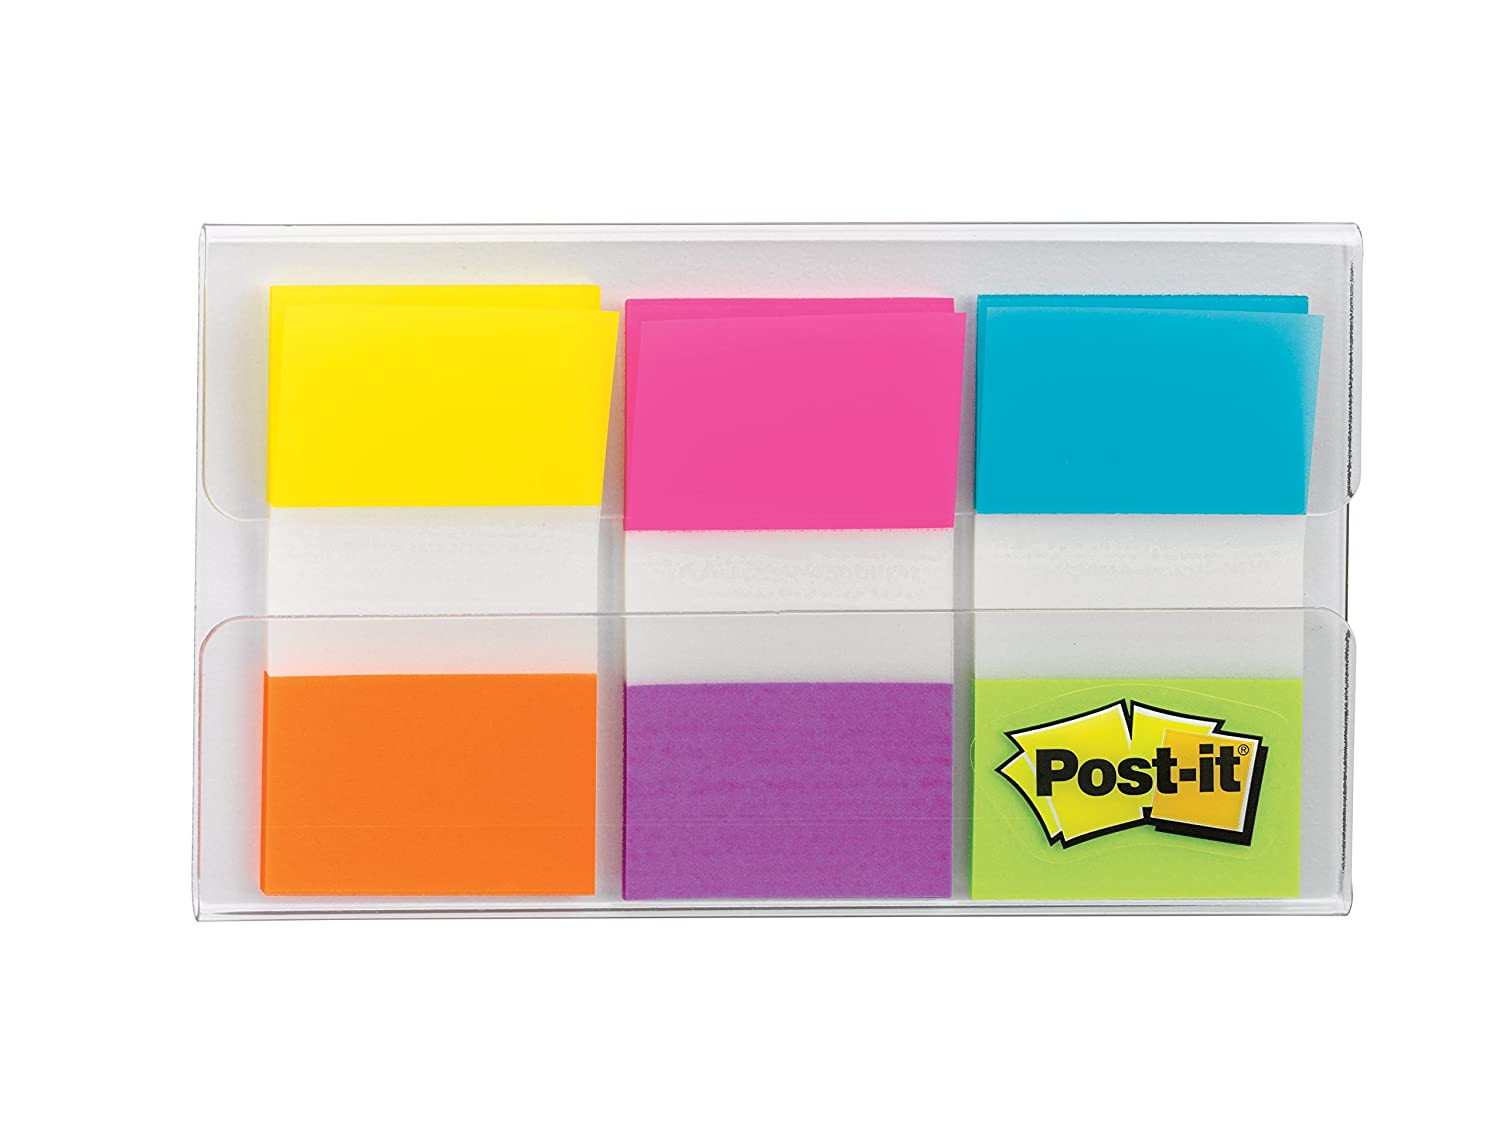 60 Flags per Pack 680-EG-ALT Post-it Flags Electric Glow.94 in x 1.7 in